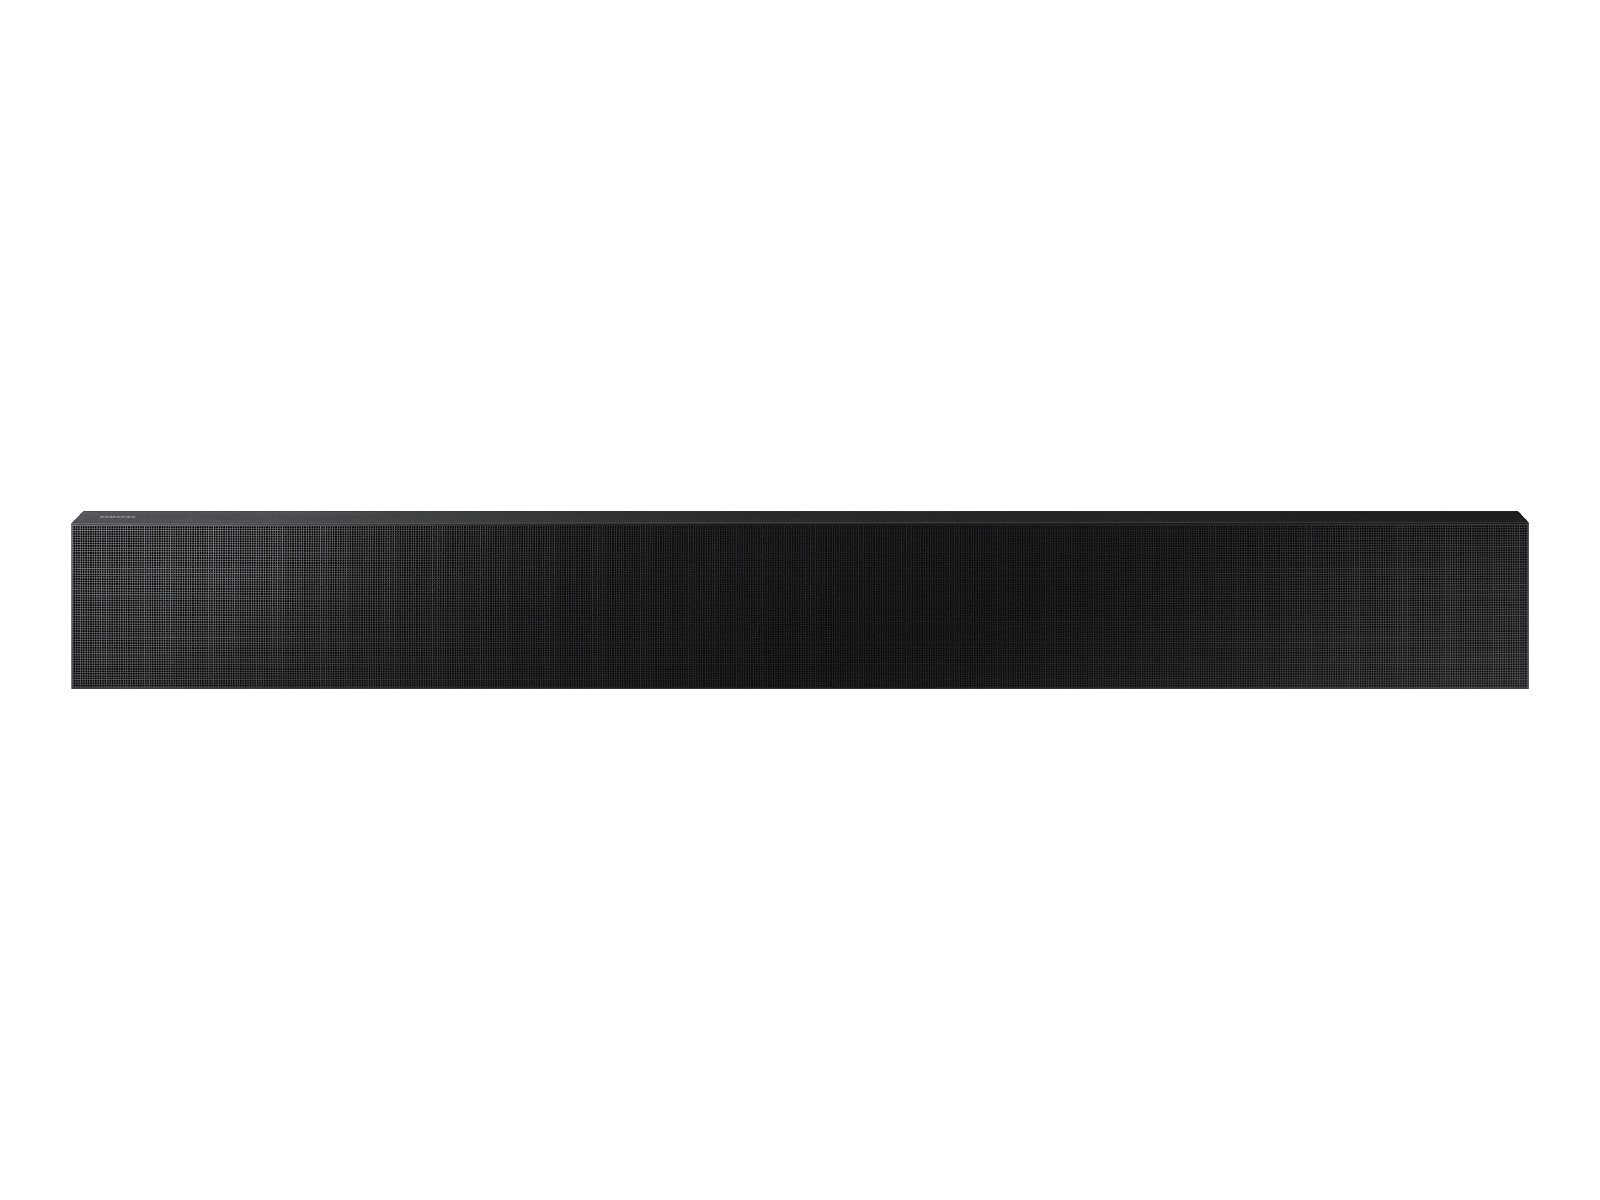 Samsung HW-LST70T The Terrace 3.0 Channel Outdoor Soundbar with Dolby 5.1ch